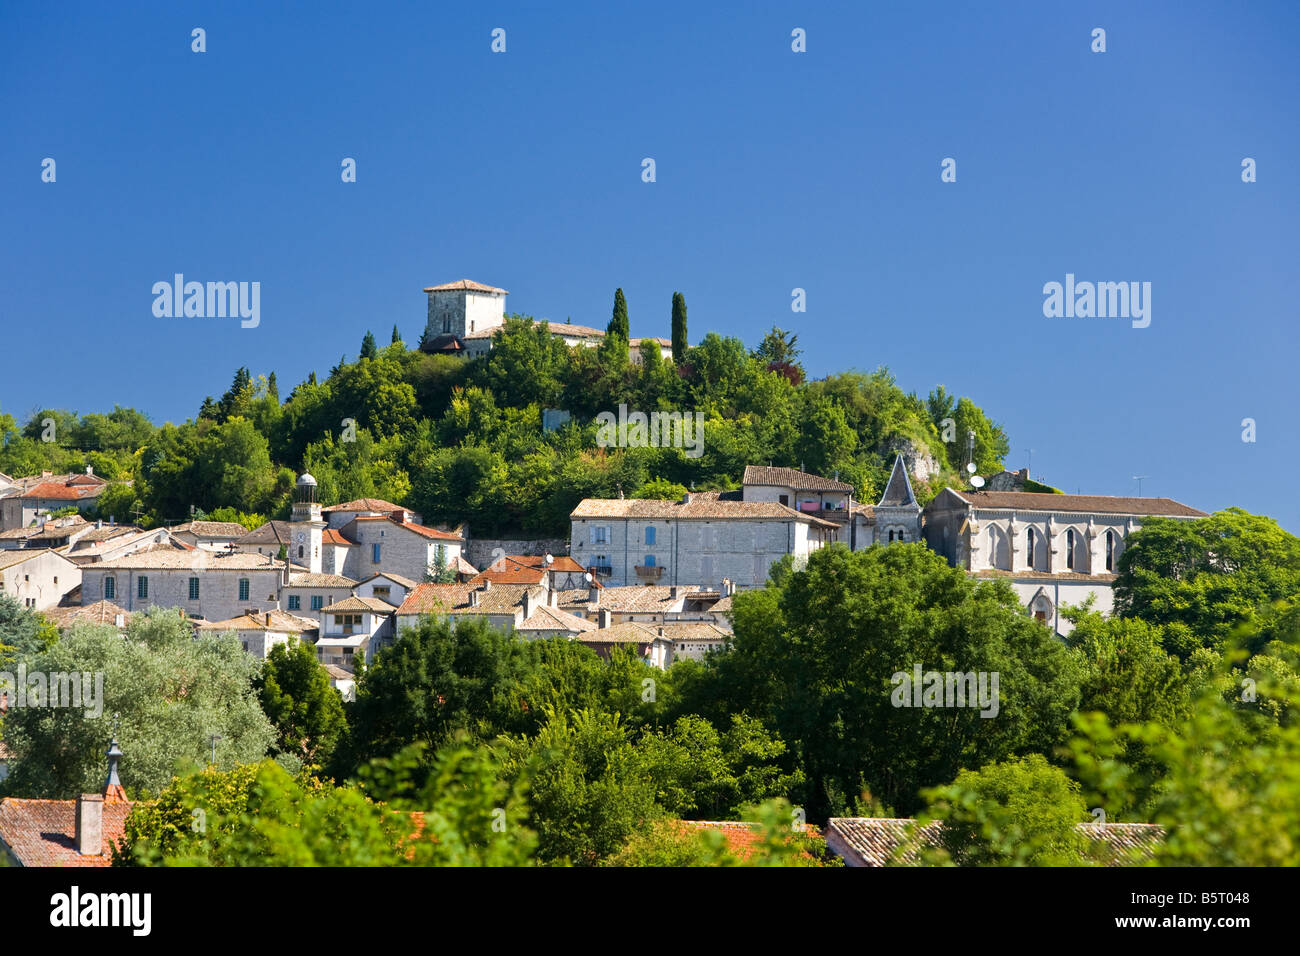 The medieval town of Montaigu de Quercy in Tarn et Garonne, France, Europe - Stock Image